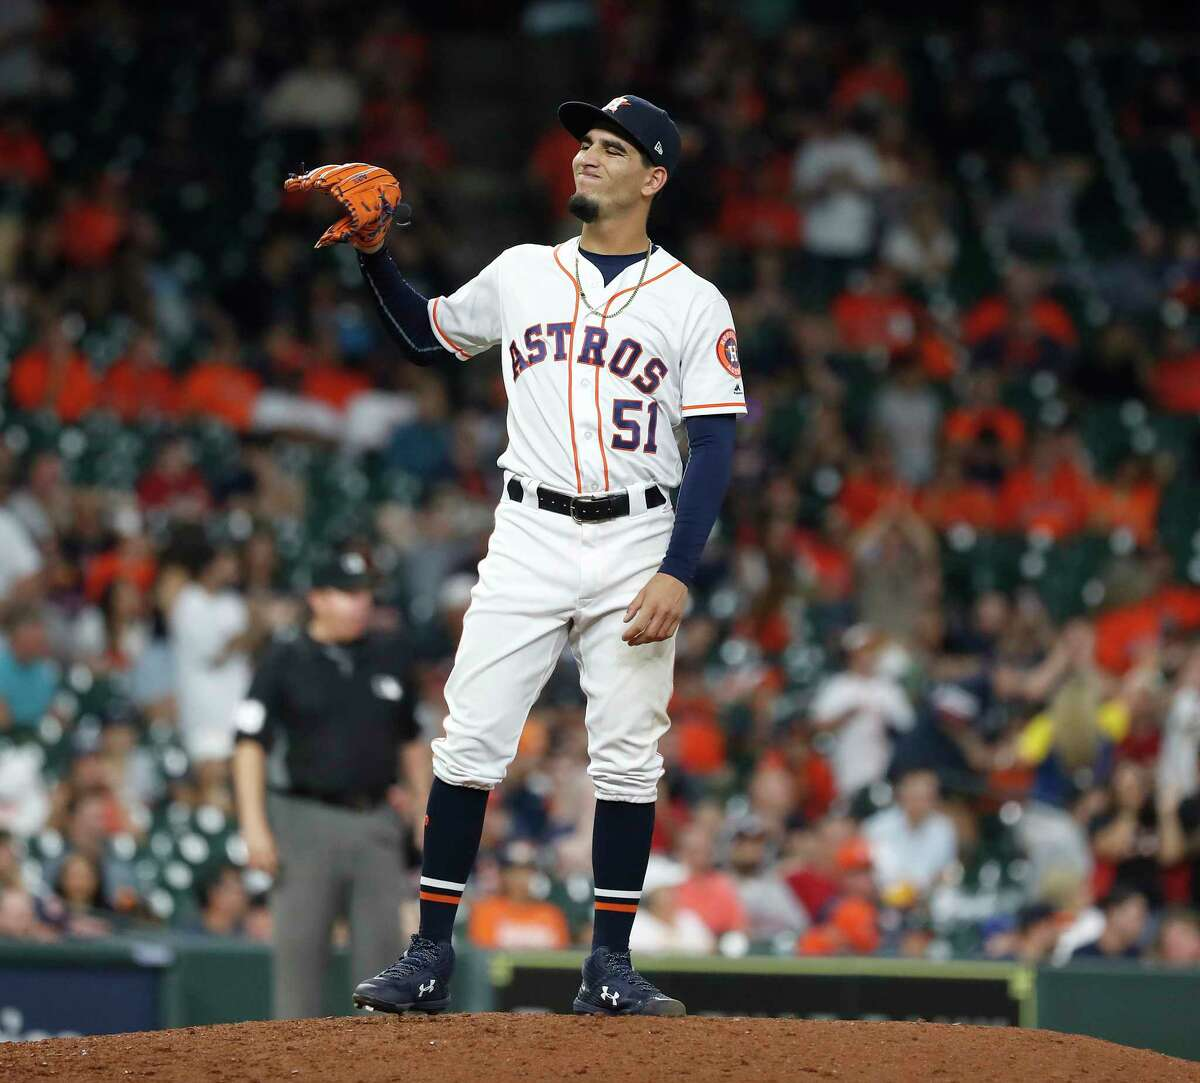 Houston Astros relief pitcher Cionel Perez (51) reacts after giving up a two-run homer to Milwaukee Brewers Mike Moustakas during the fourteenth inning of an MLB baseball game at Minute Maid Park, Wednesday, June 12, 2019.